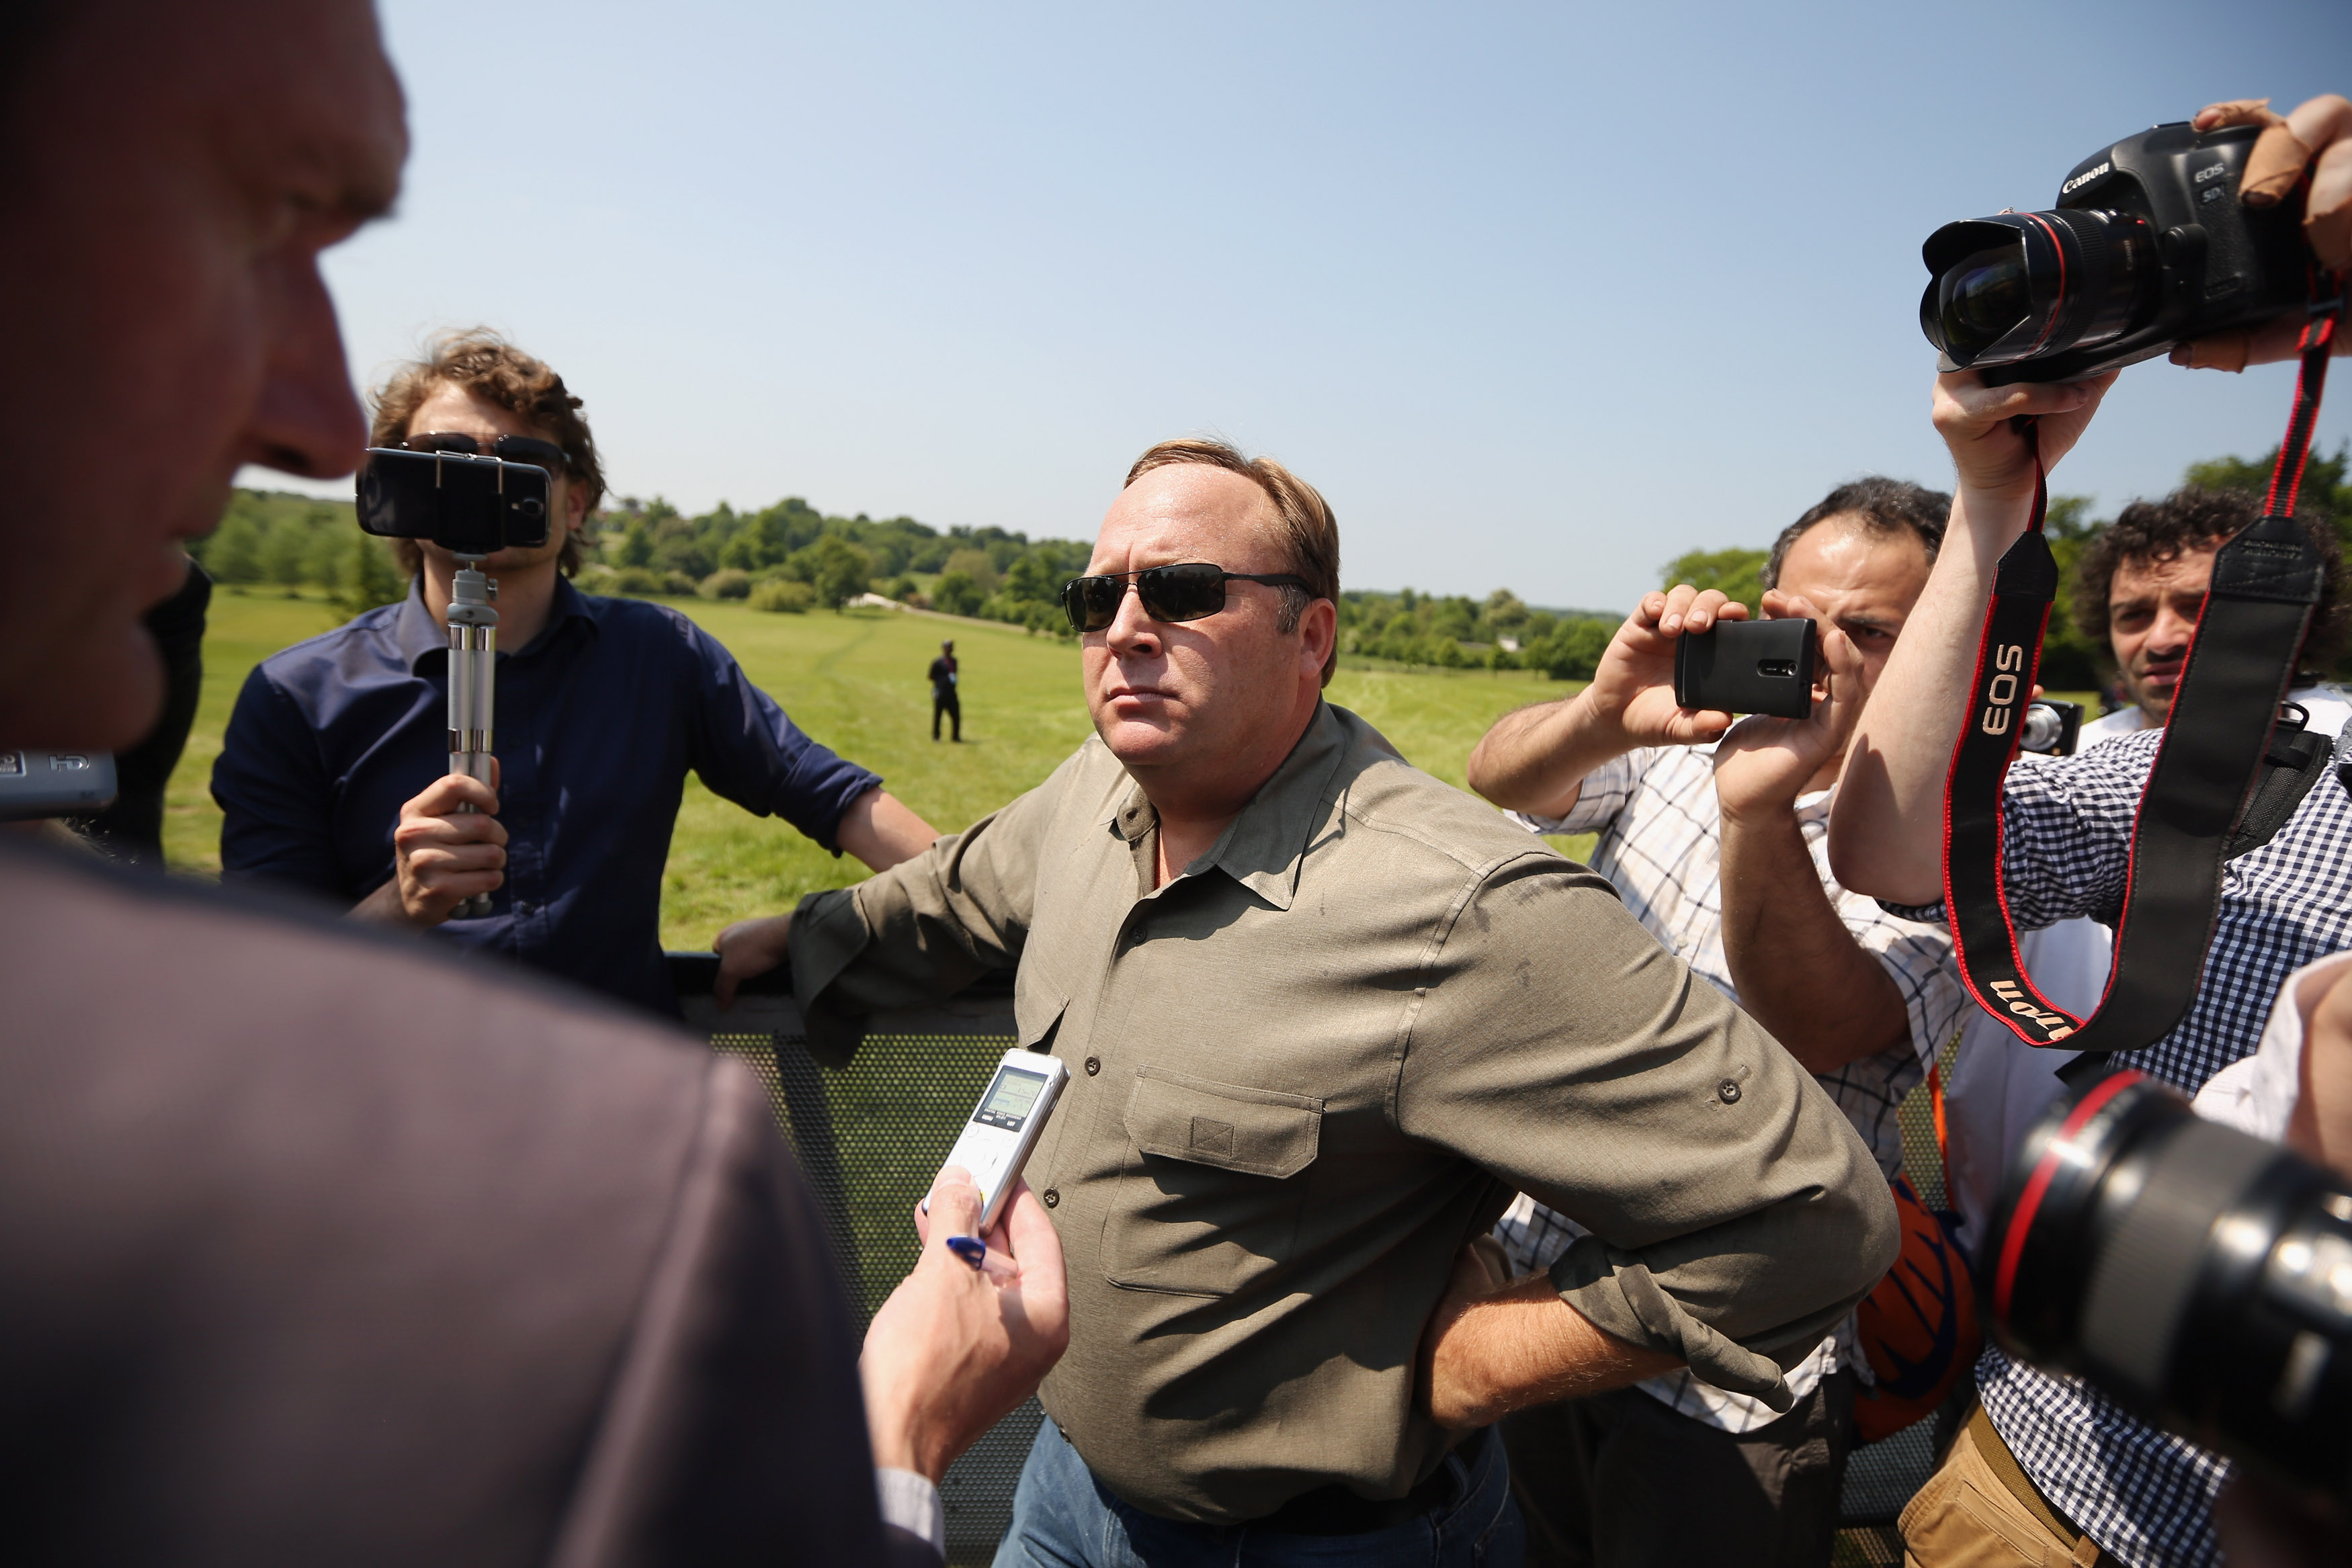 Alex Jones, Pizzagate booster and America's most famous conspiracy theorist, explained